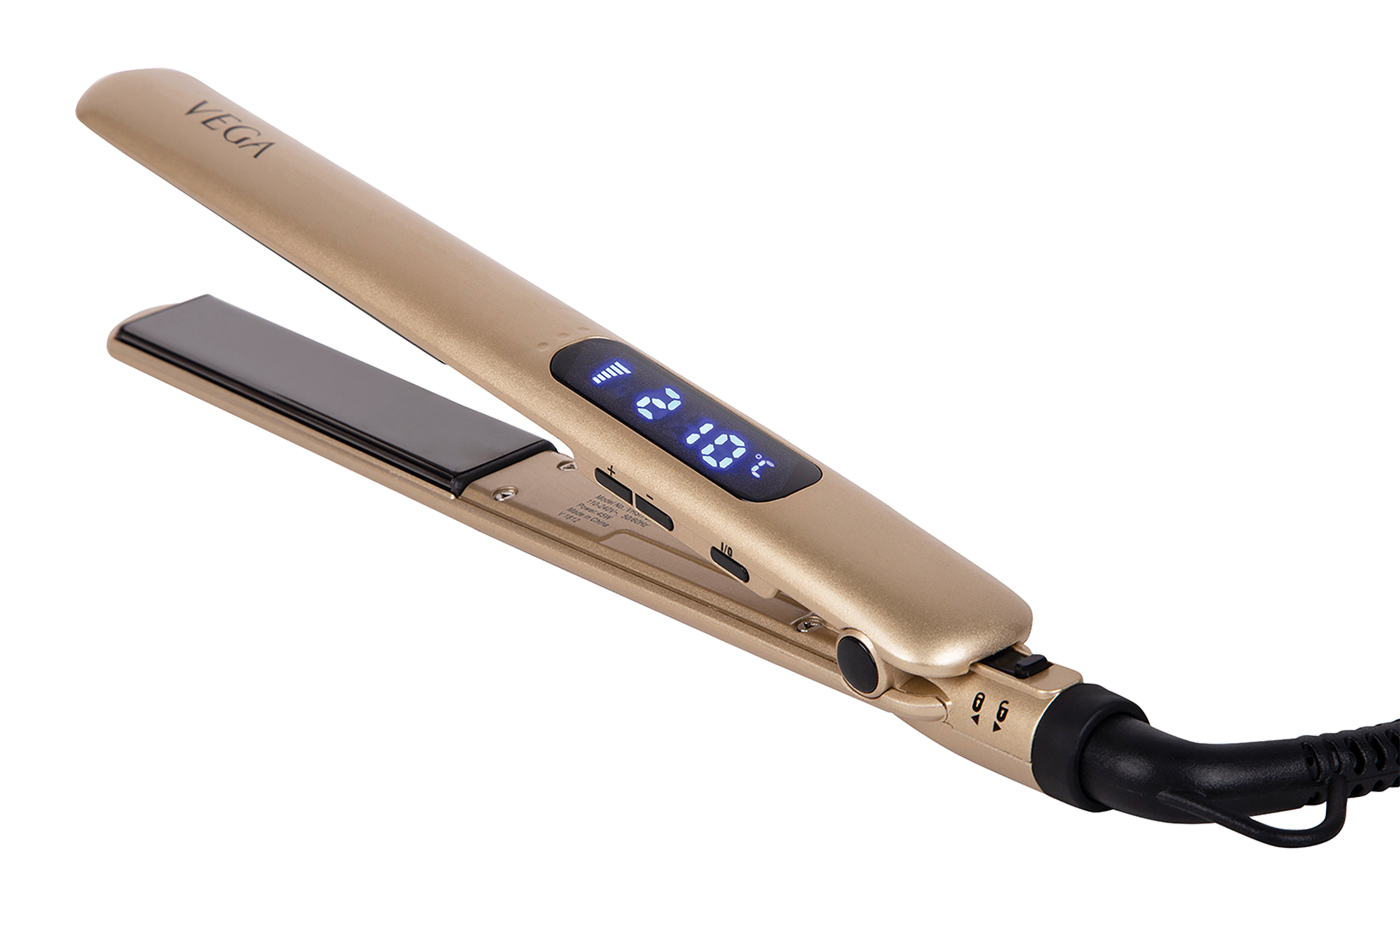 Vega's hair straightener for professionals